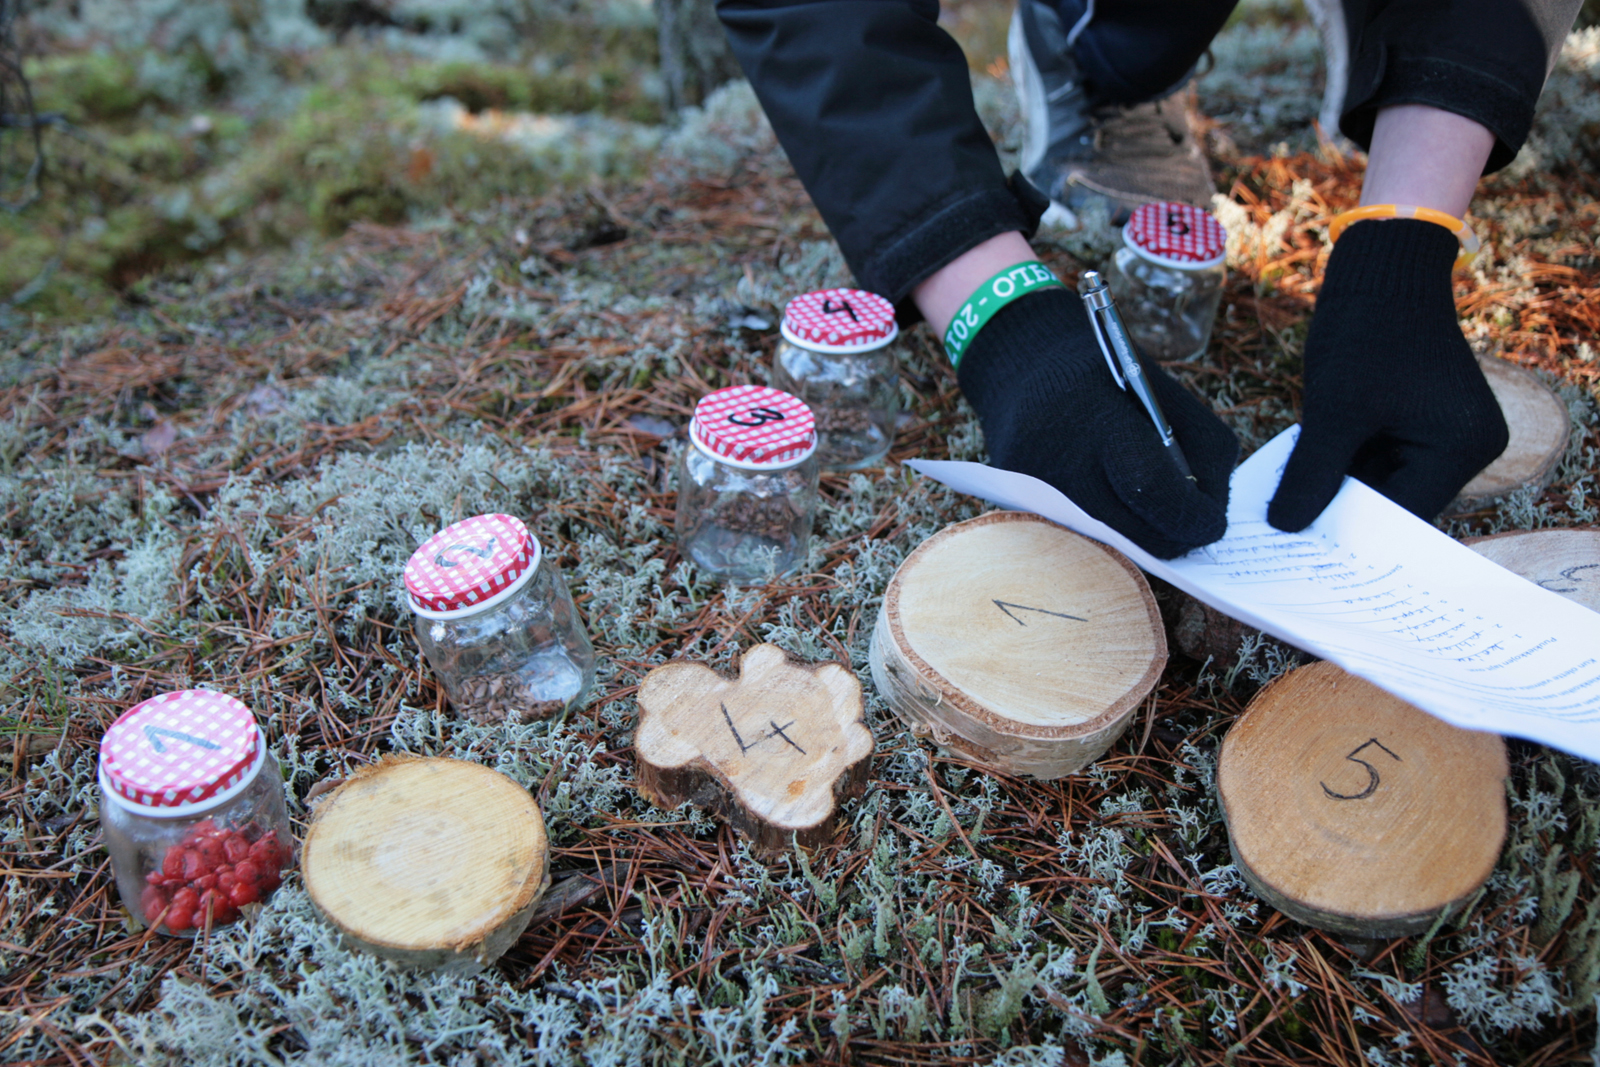 The young scouts and guides have a lot of knowledge about forests. Photo: Anna Kauppi